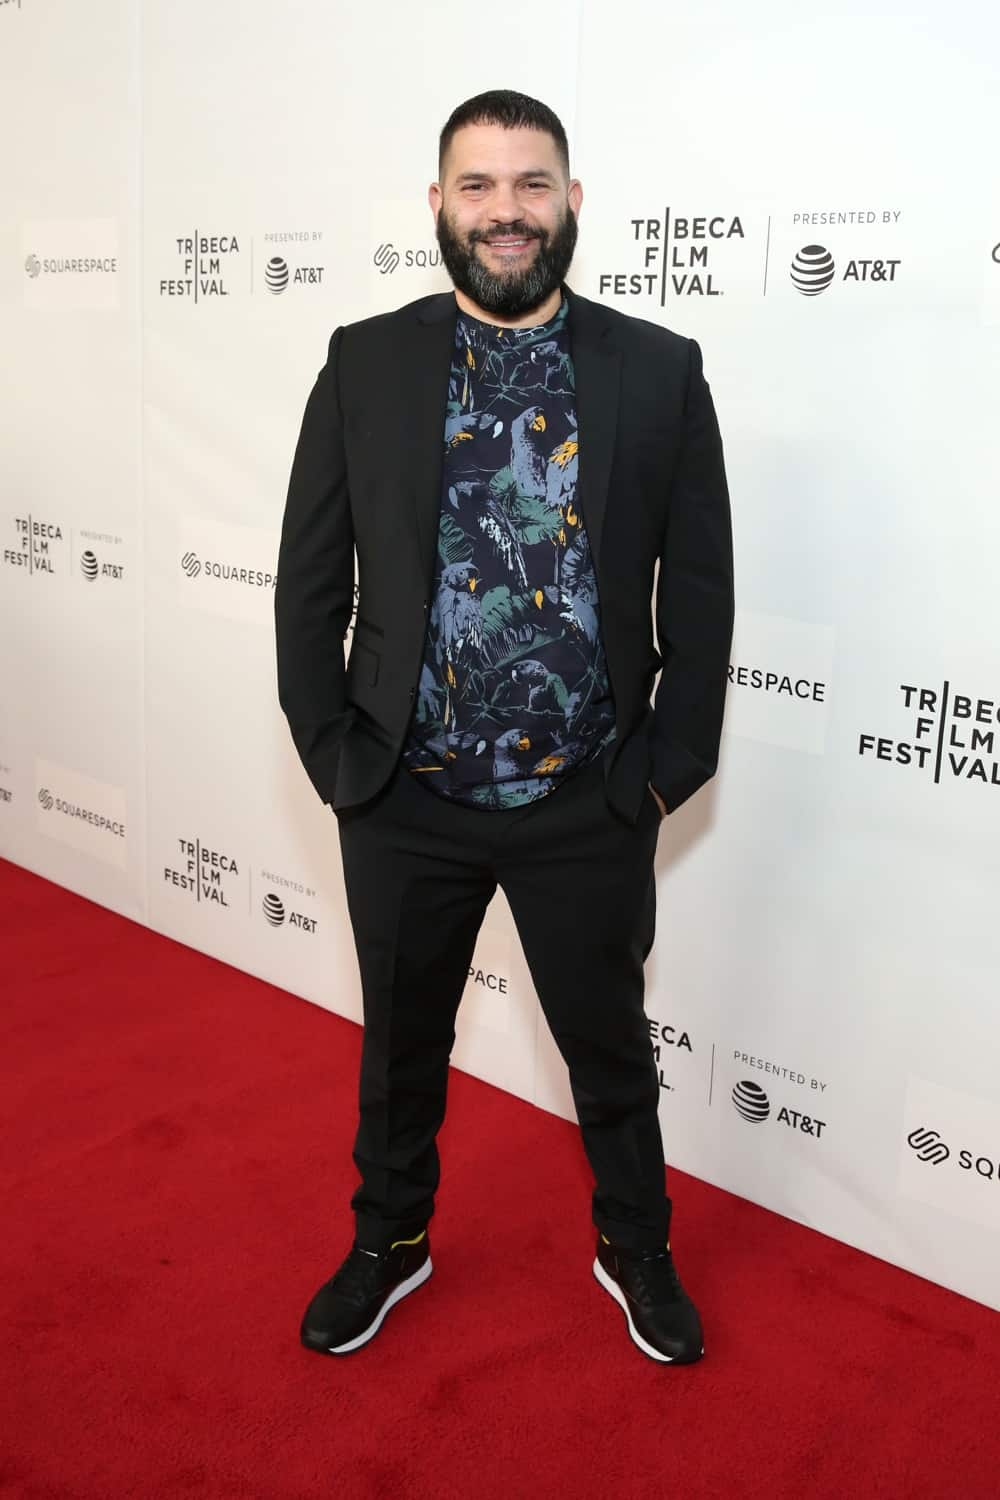 Guillermo Diaz World Premiere Of 'GAY CHORUS DEEP SOUTH' Documentary, Developed And Produced By Airbnb At The 2019 Tribeca Film Festival